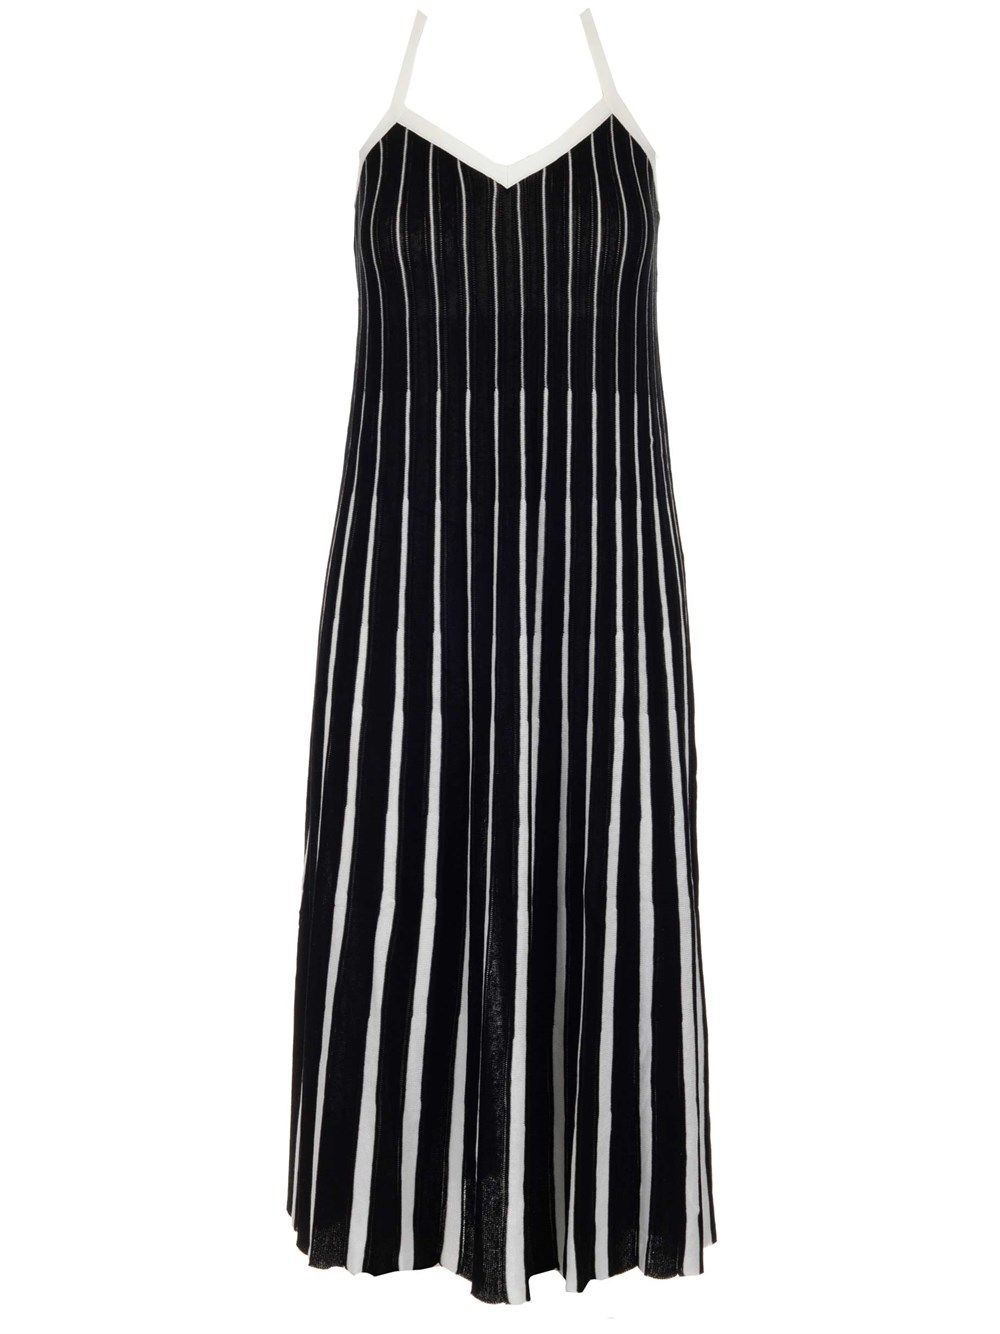 Red Valentino Cottons RED VALENTINO WOMEN'S VR0KD02S5UK0NI BLACK OTHER MATERIALS DRESS